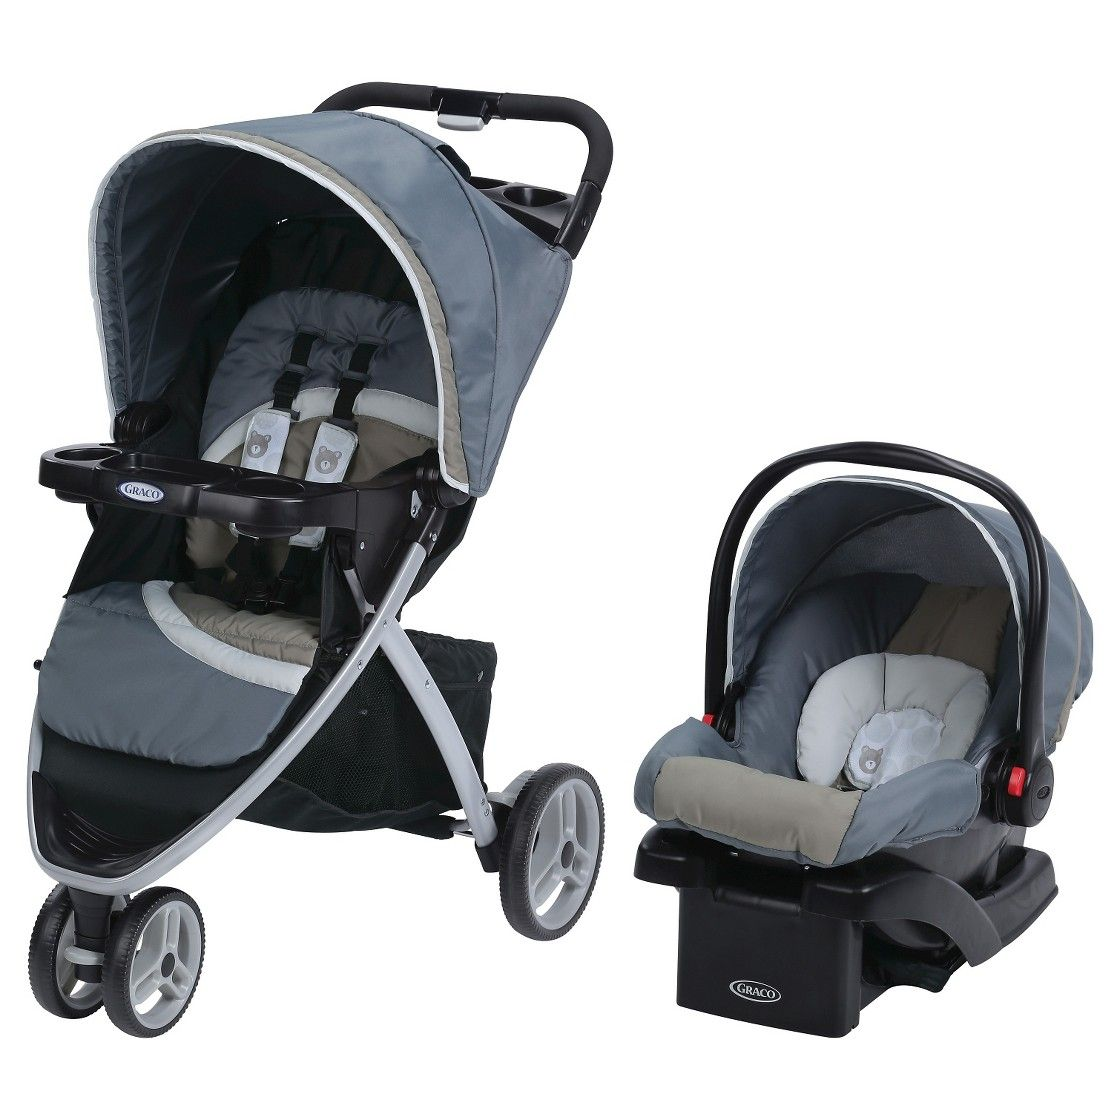 Graco Pace Click Connect Travel System Click connect